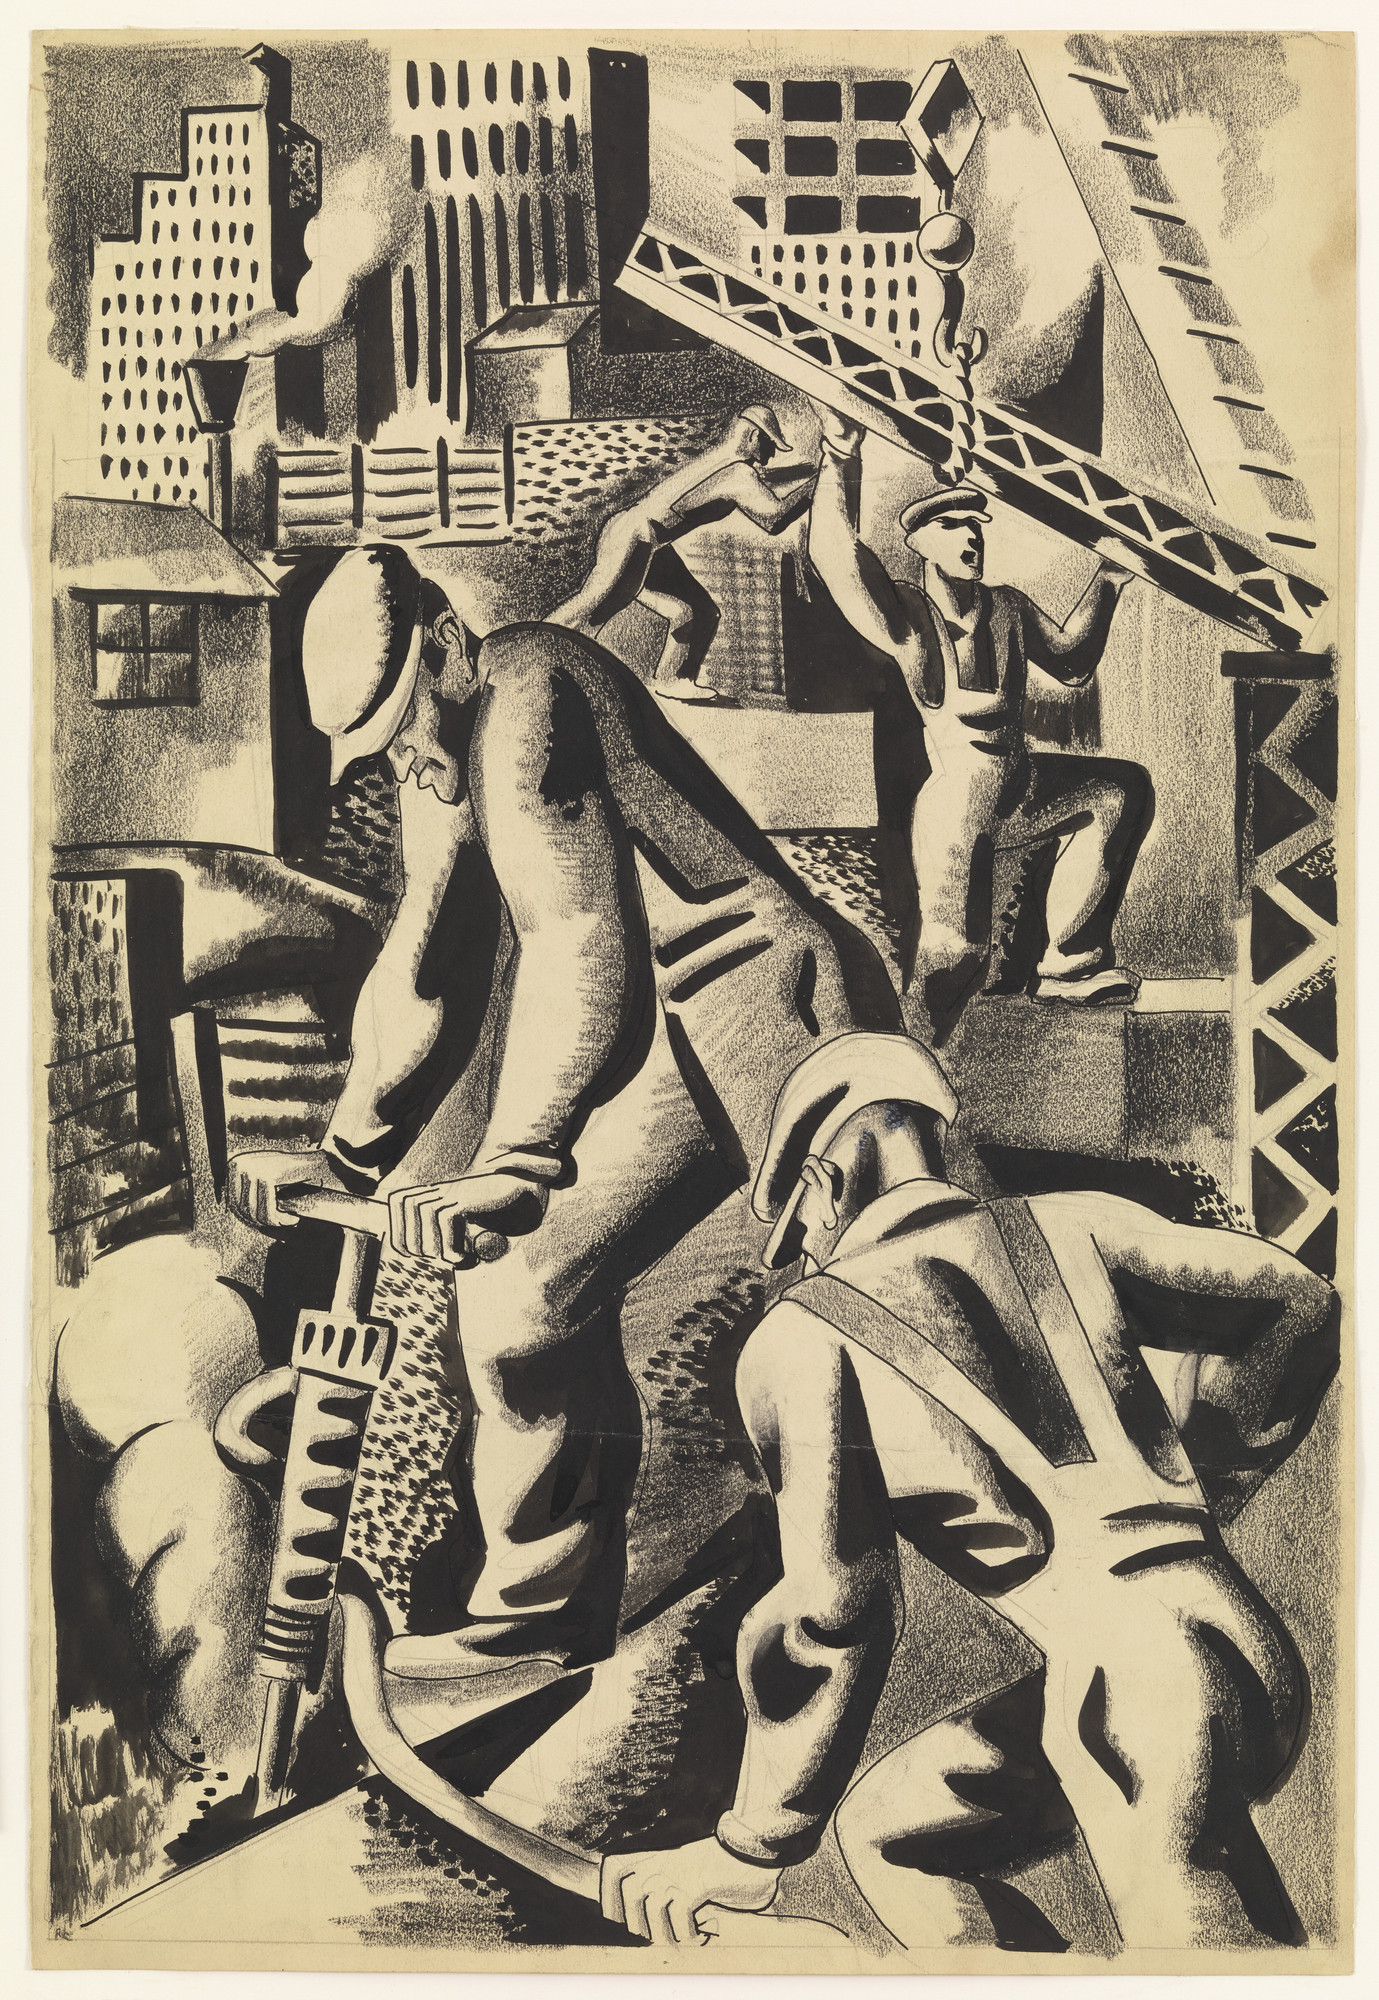 Jan Matulka. Figure Composition - Working Men. (c. 1927)